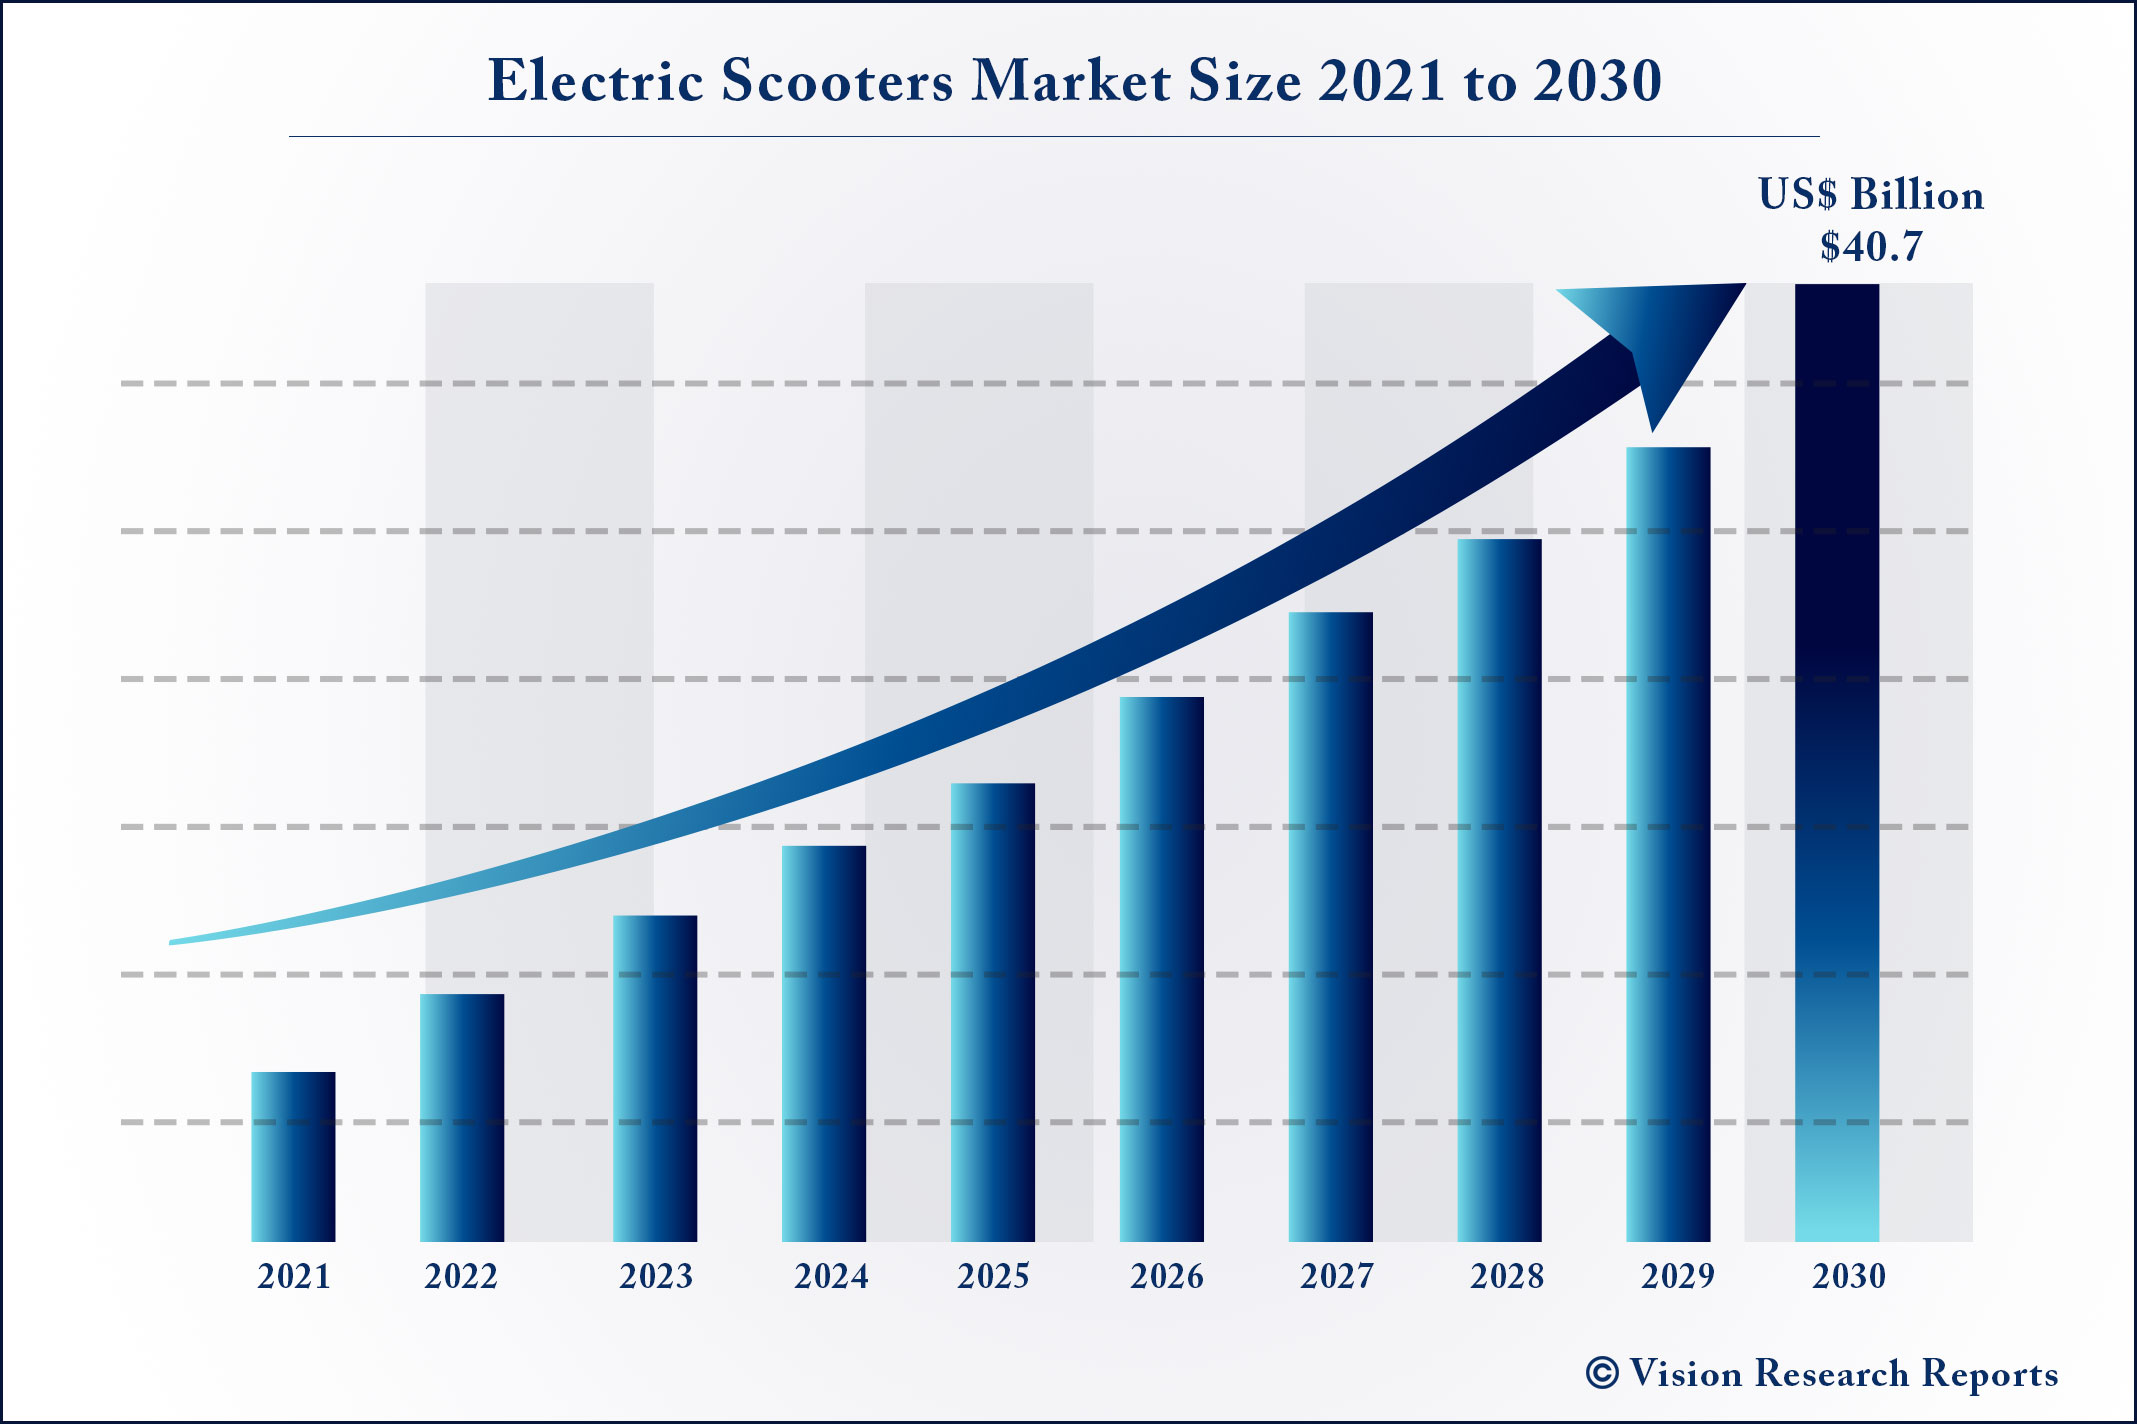 Electric Scooters Market Size 2021 to 2030